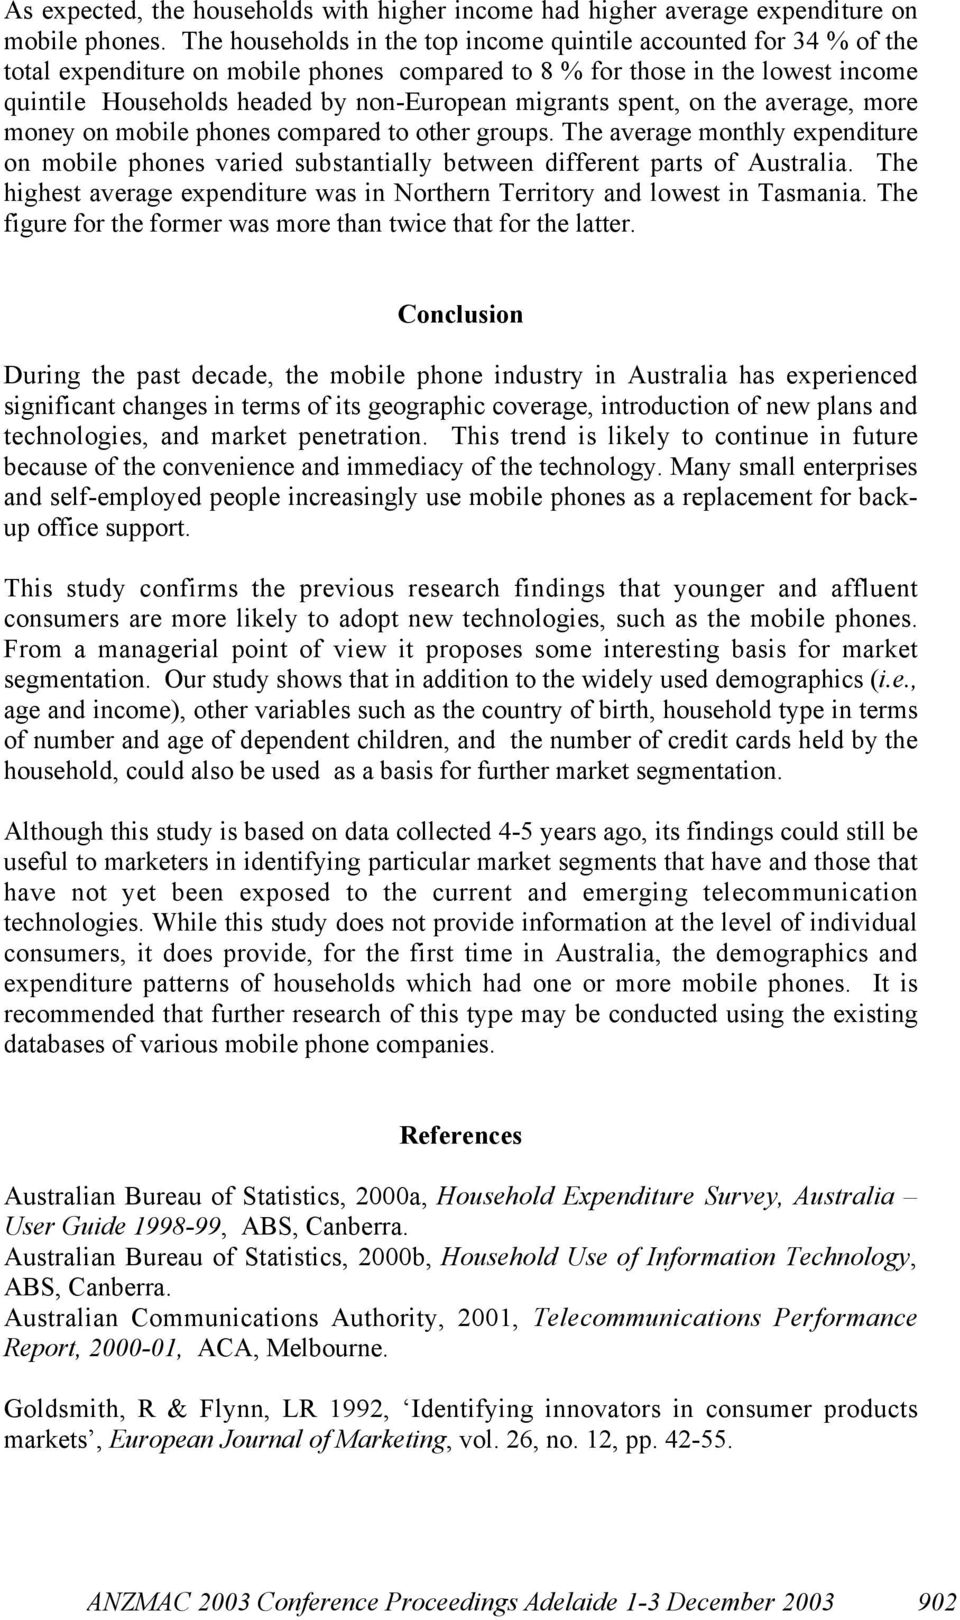 migrants spent, on the average, more money on mobile phones compared to other groups. The average monthly expenditure on mobile phones varied substantially between different parts of Australia.